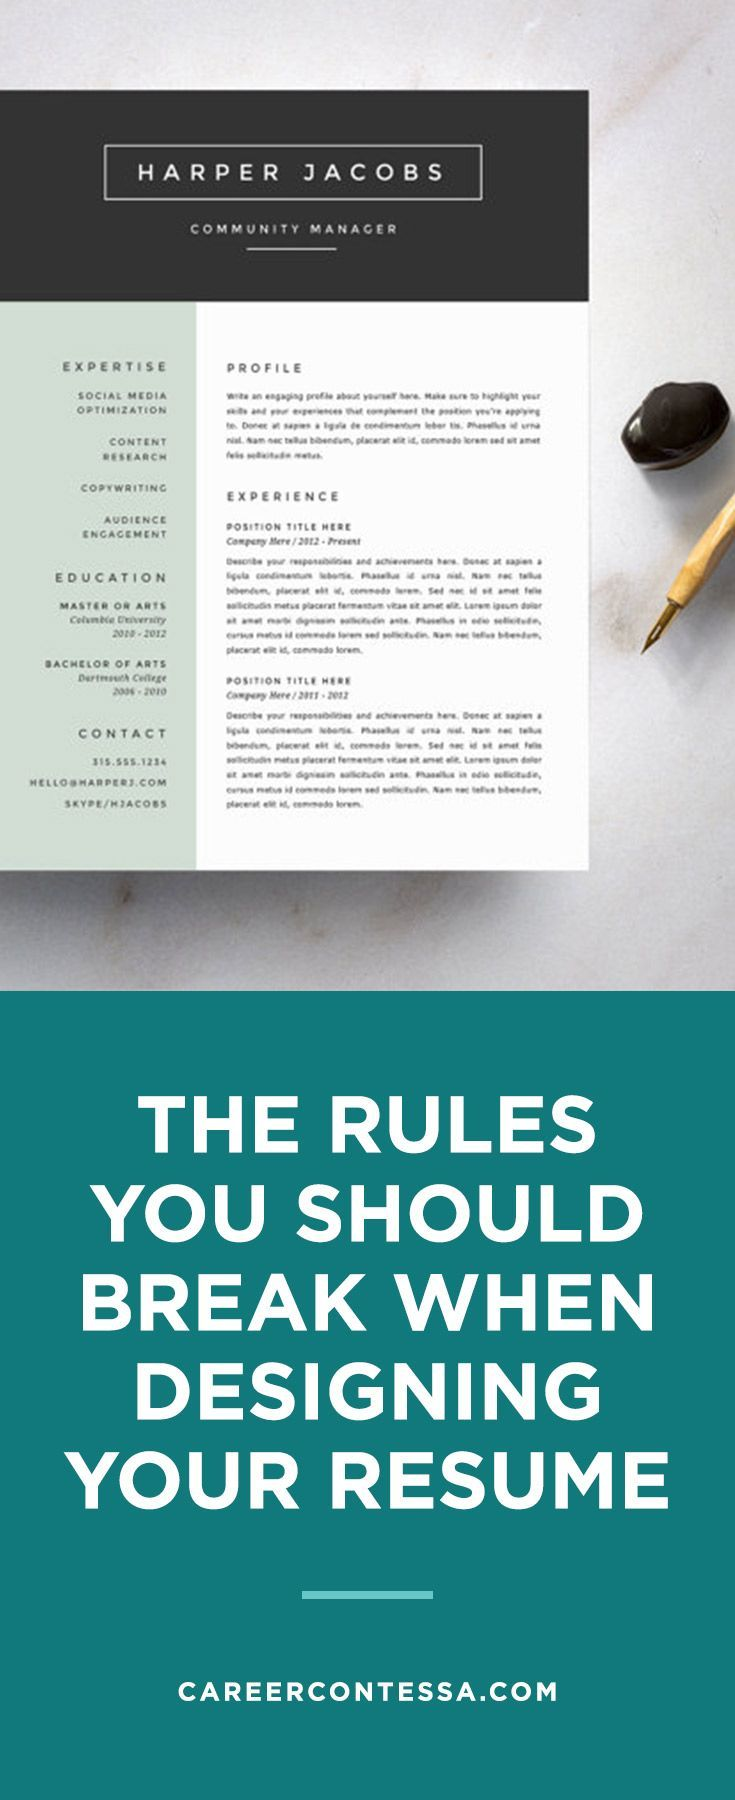 How To Make Your Resume Stand Out (by Breaking A Few Rules)